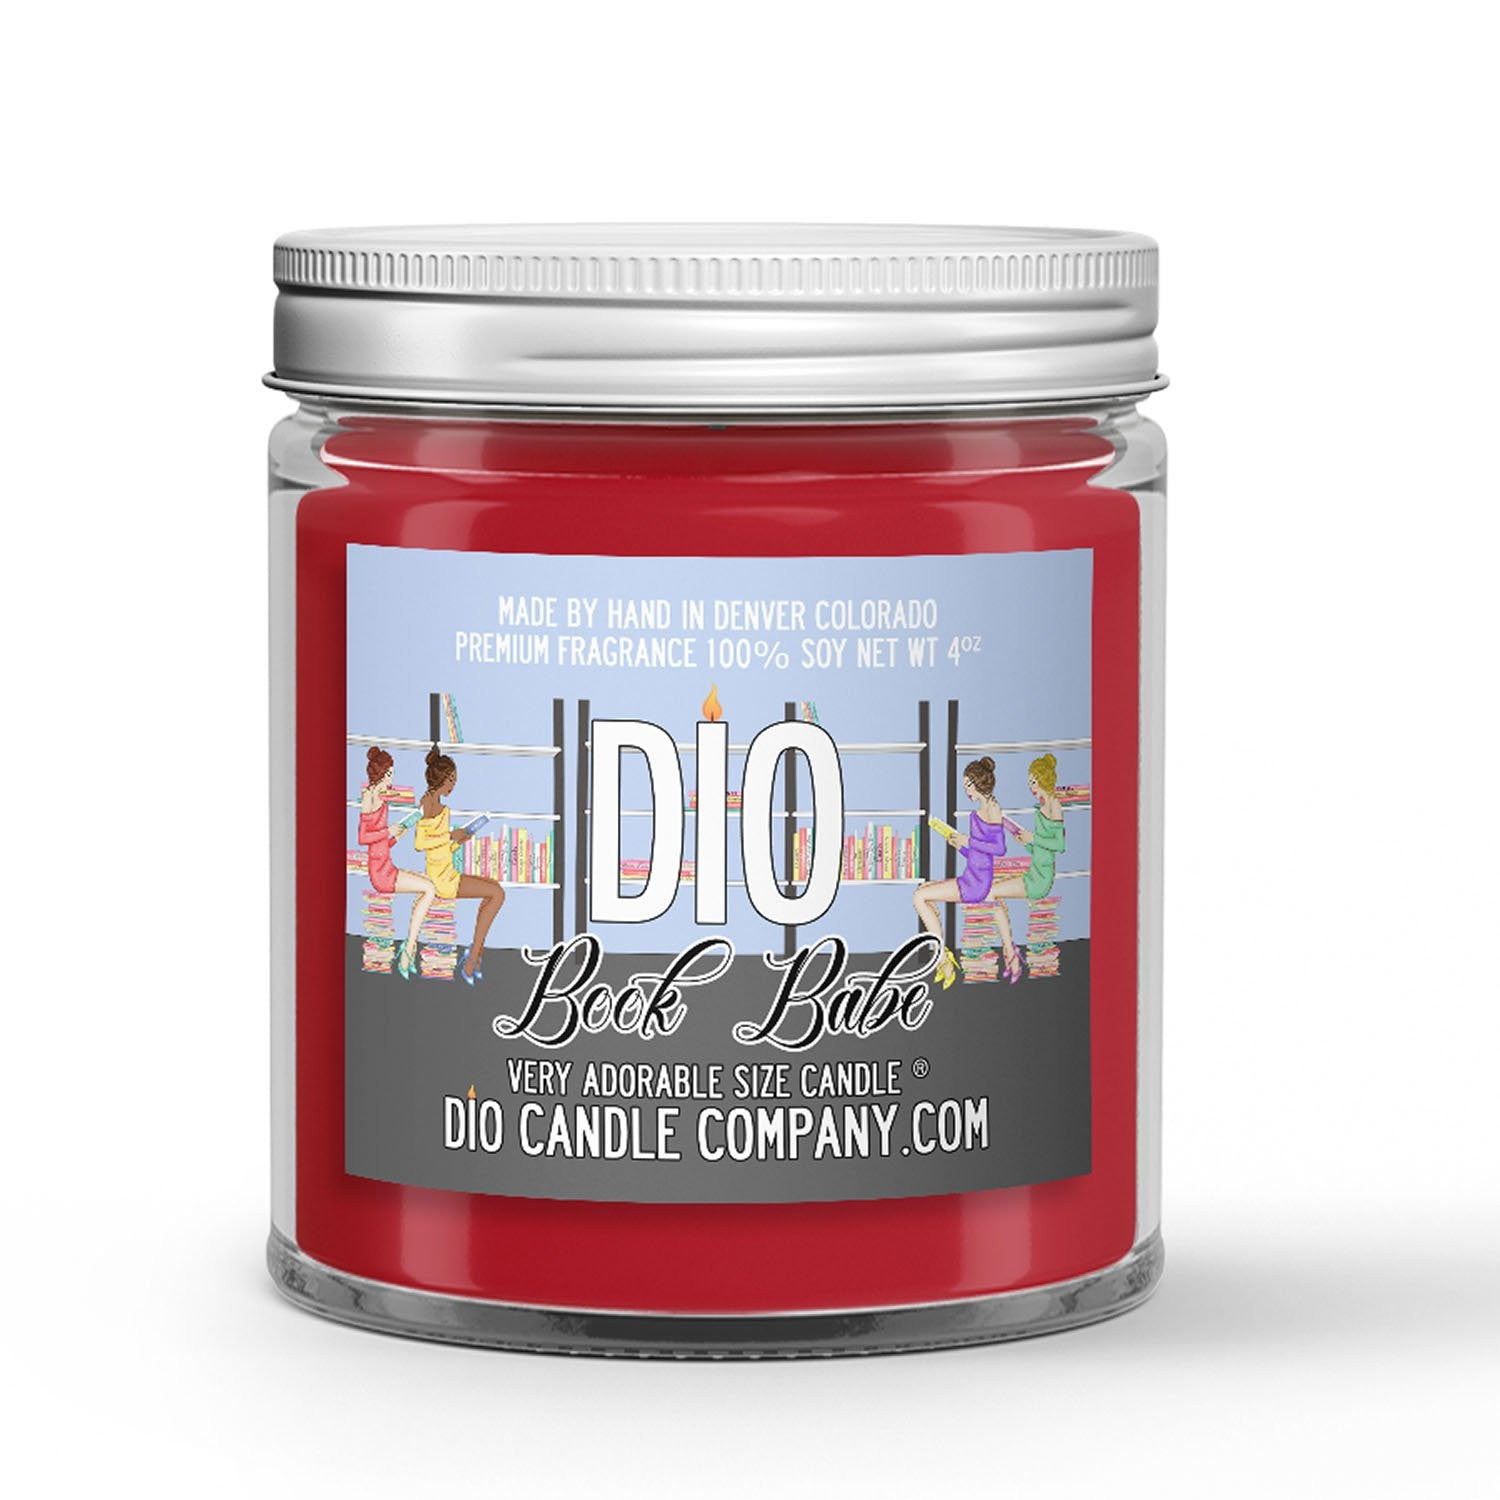 Book Babe Candle - Chocolate - Strawberries - Roses - 4oz Very Adorable Size Candle® - Dio Candle Company